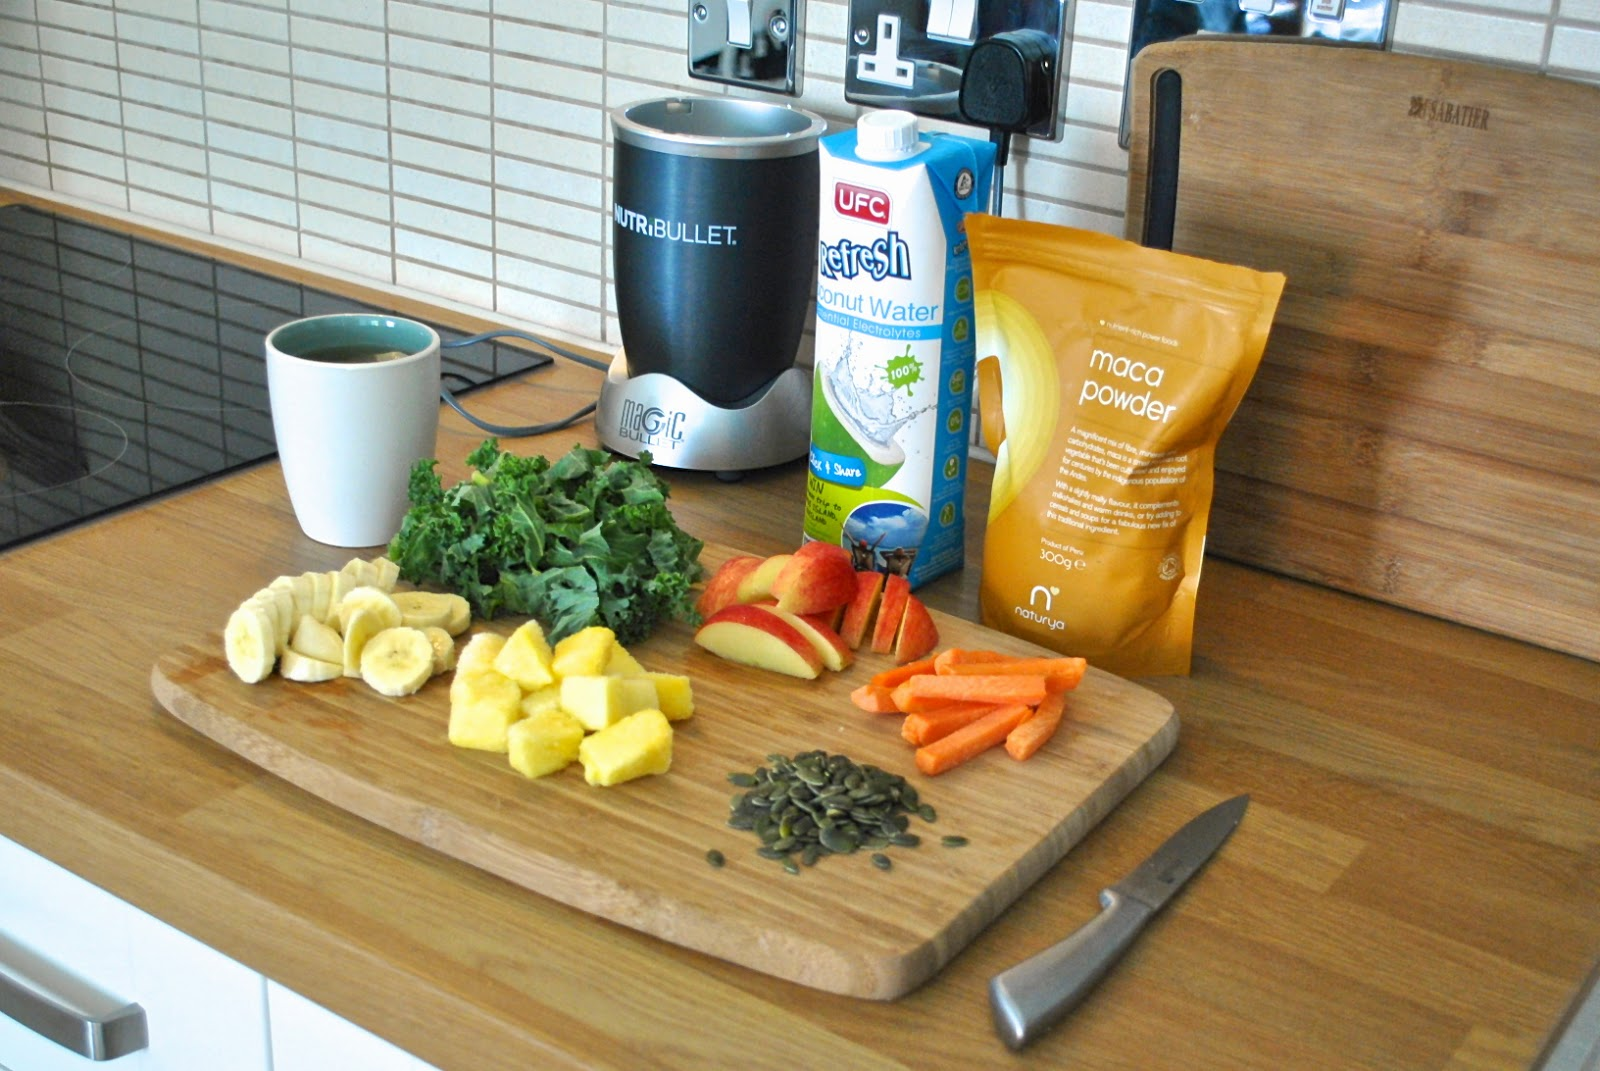 NutriBullet smoothie recipe